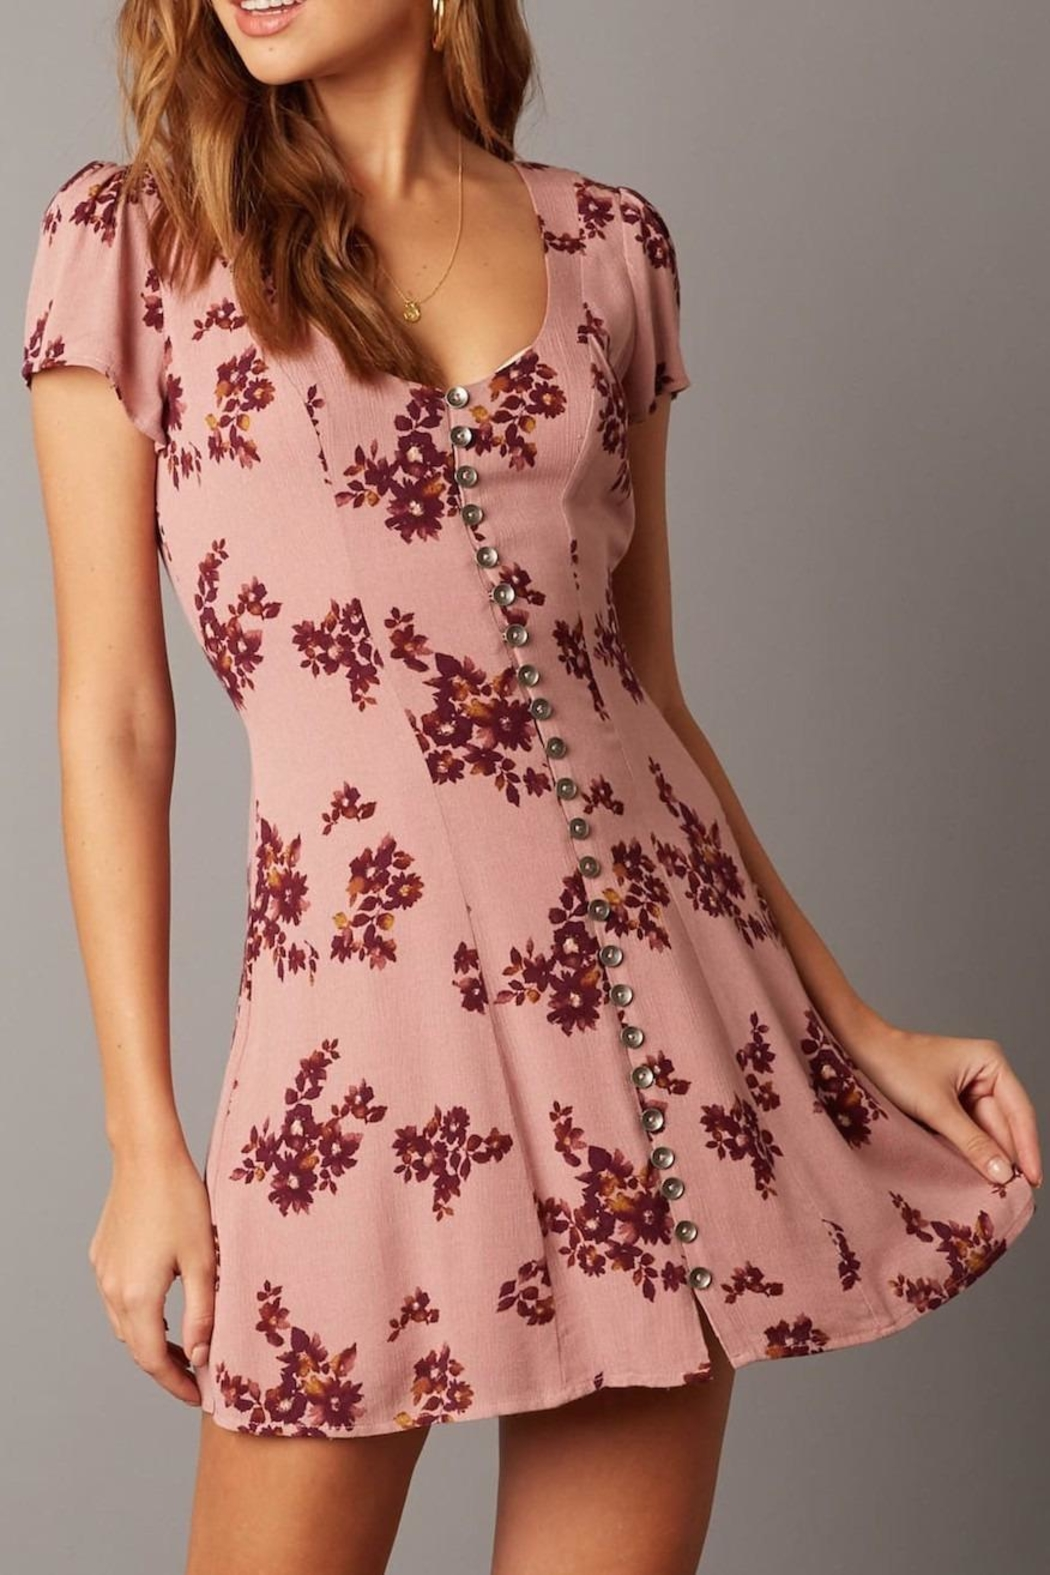 Cotton Candy Short-Sleeve Floral Dress - Front Full Image